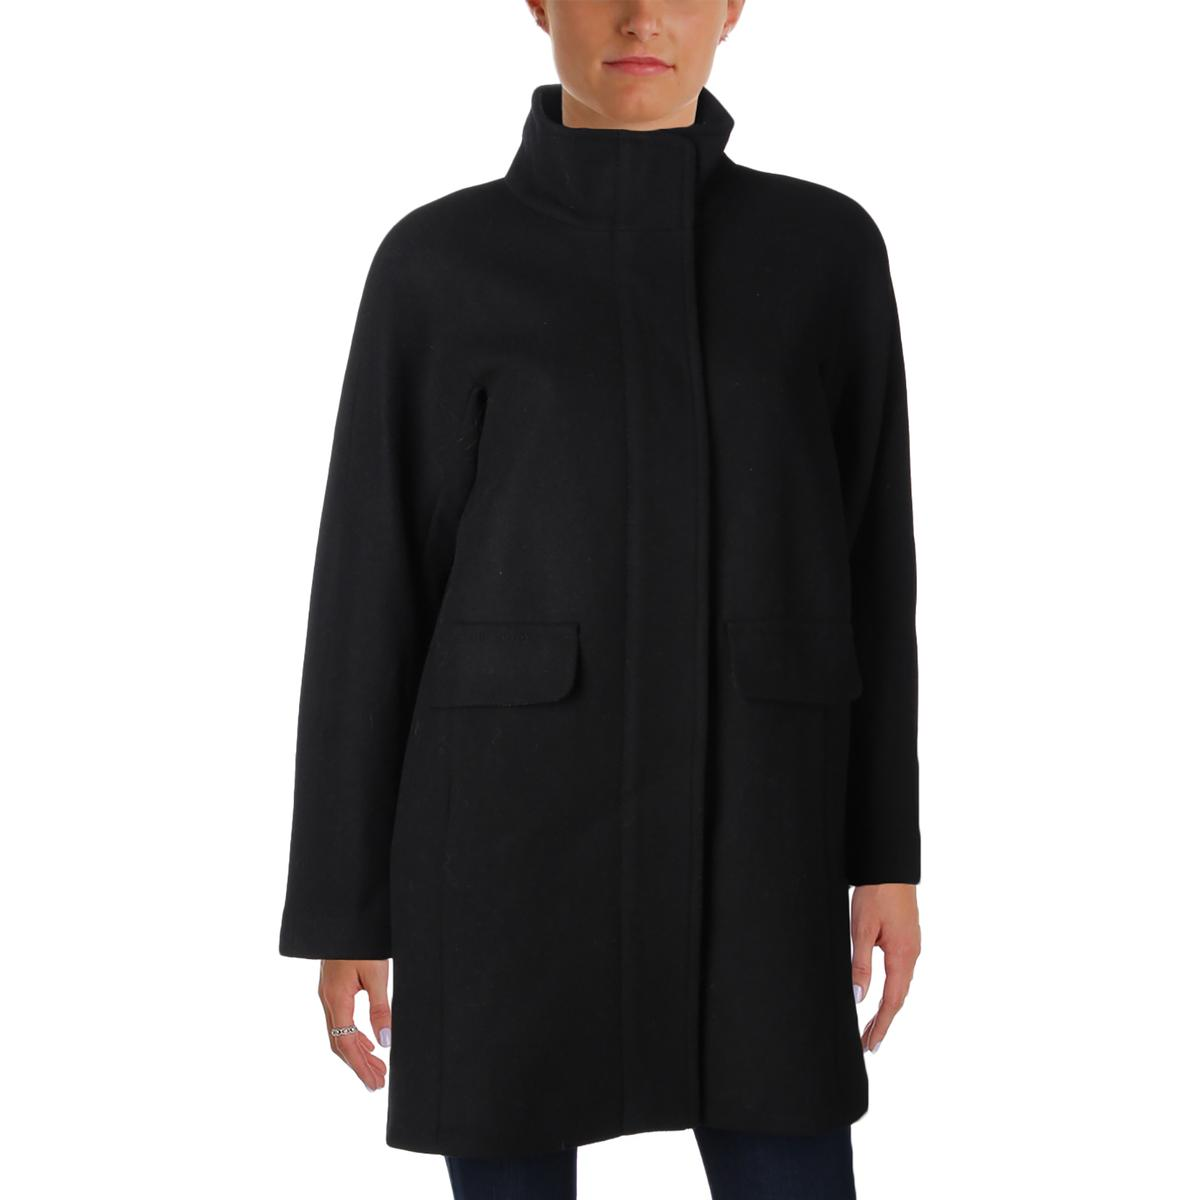 Vince Camuto Womens Wool Long Coat by Vince Camuto